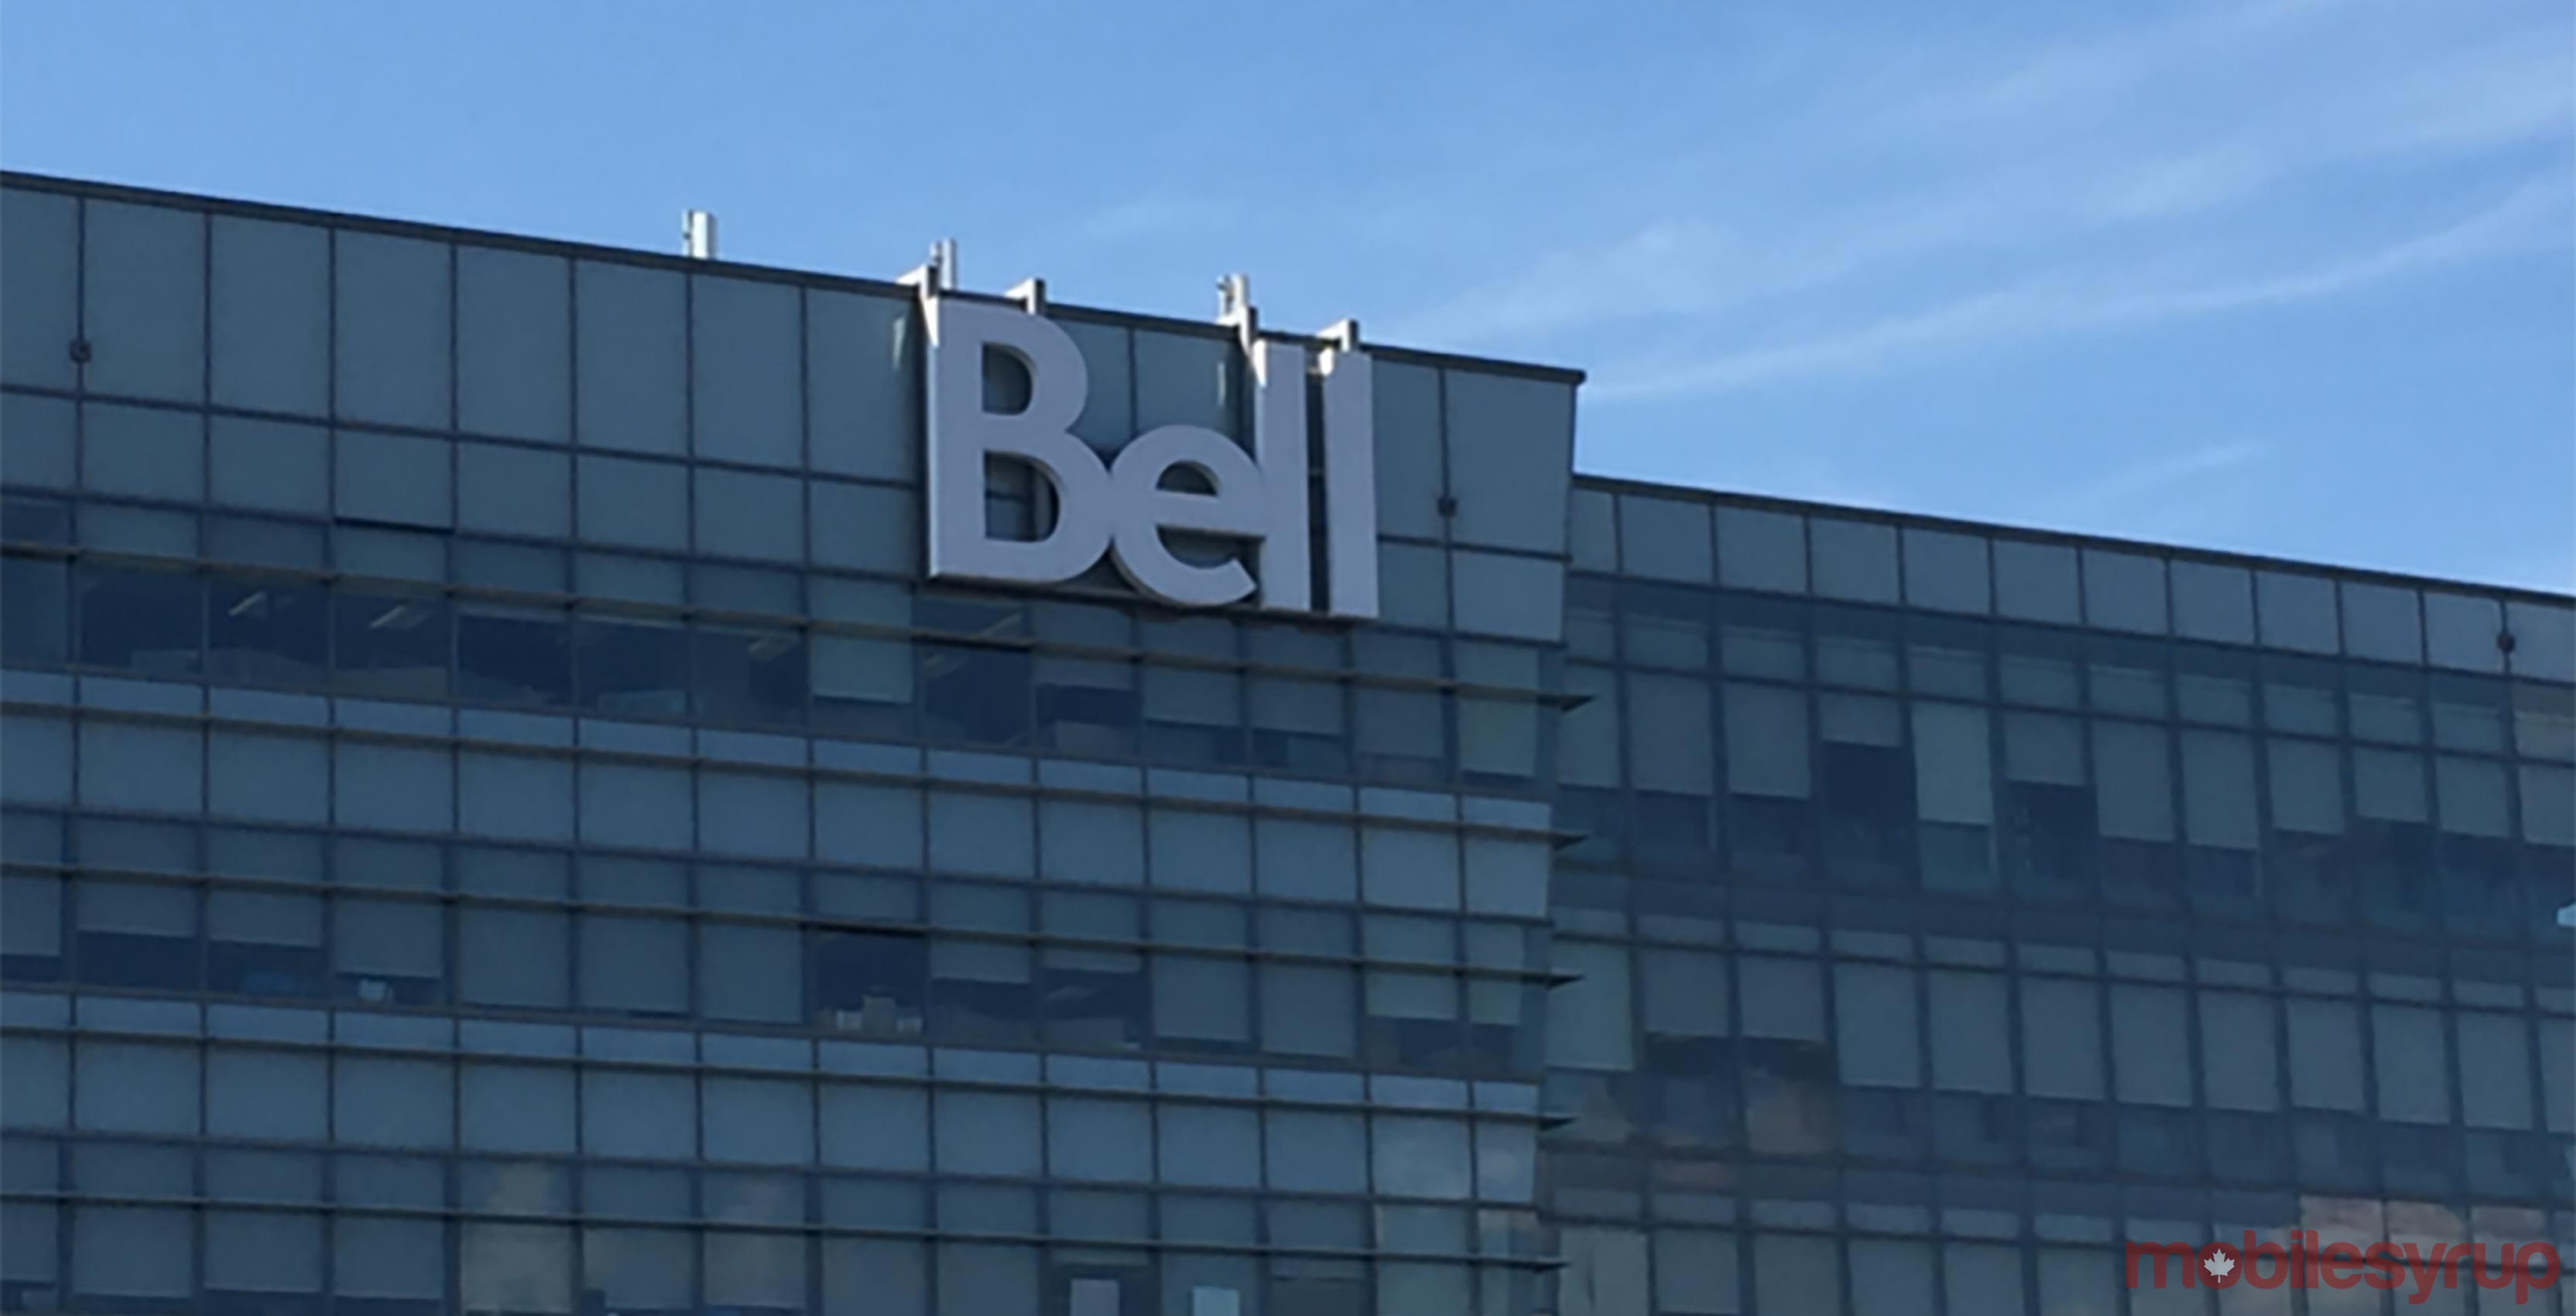 Bell Building